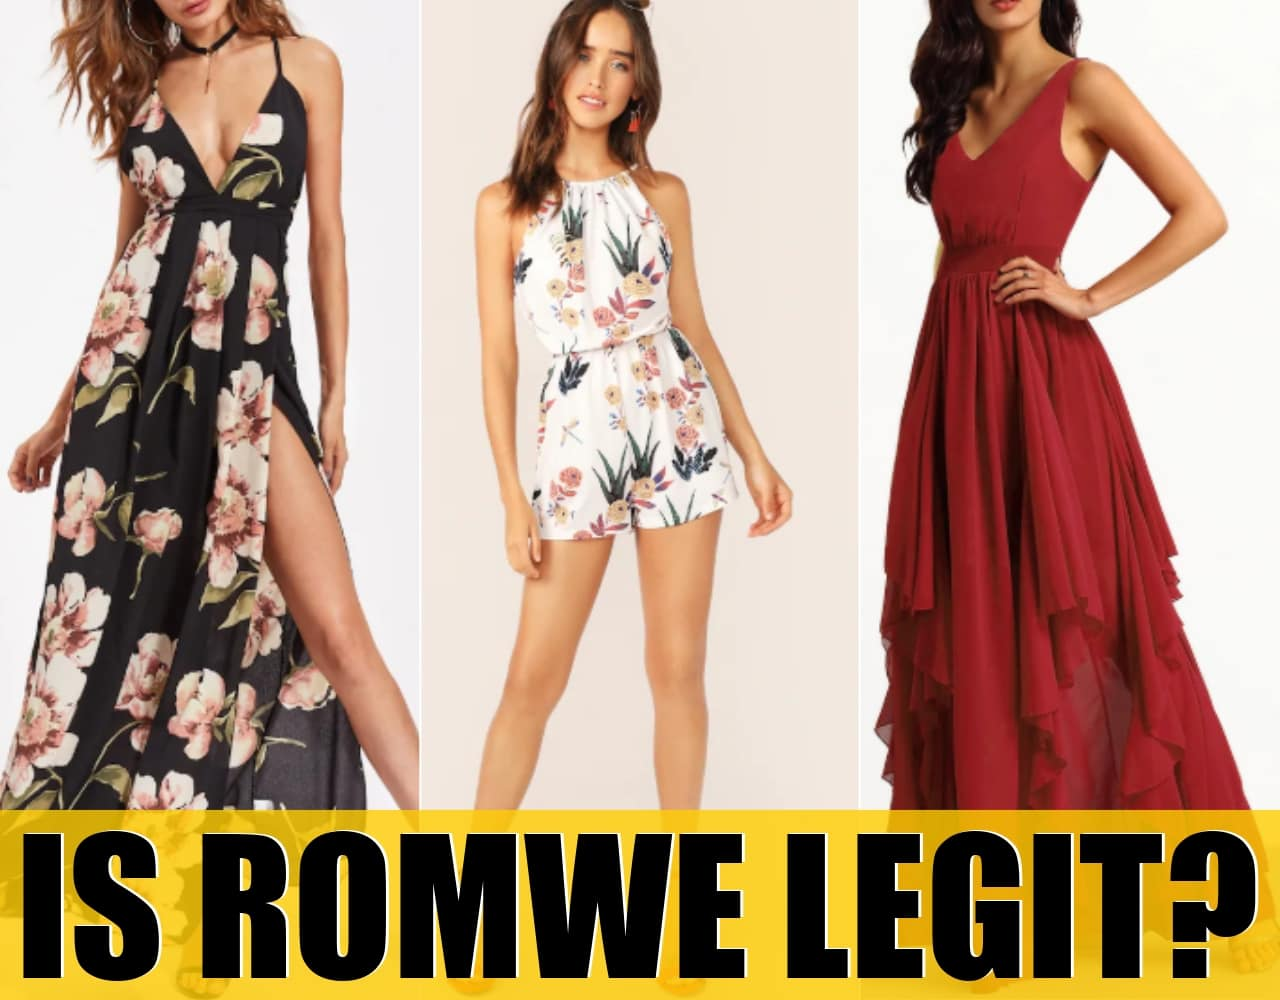 Are those negative Romwe reviews true? Or were they concocted by a bunch of irate customers? Or maybe it's a great store with the cutest and most affordable pieces with horrible customer service? Keep reading to get the scoop about my experience shopping from Romwe.